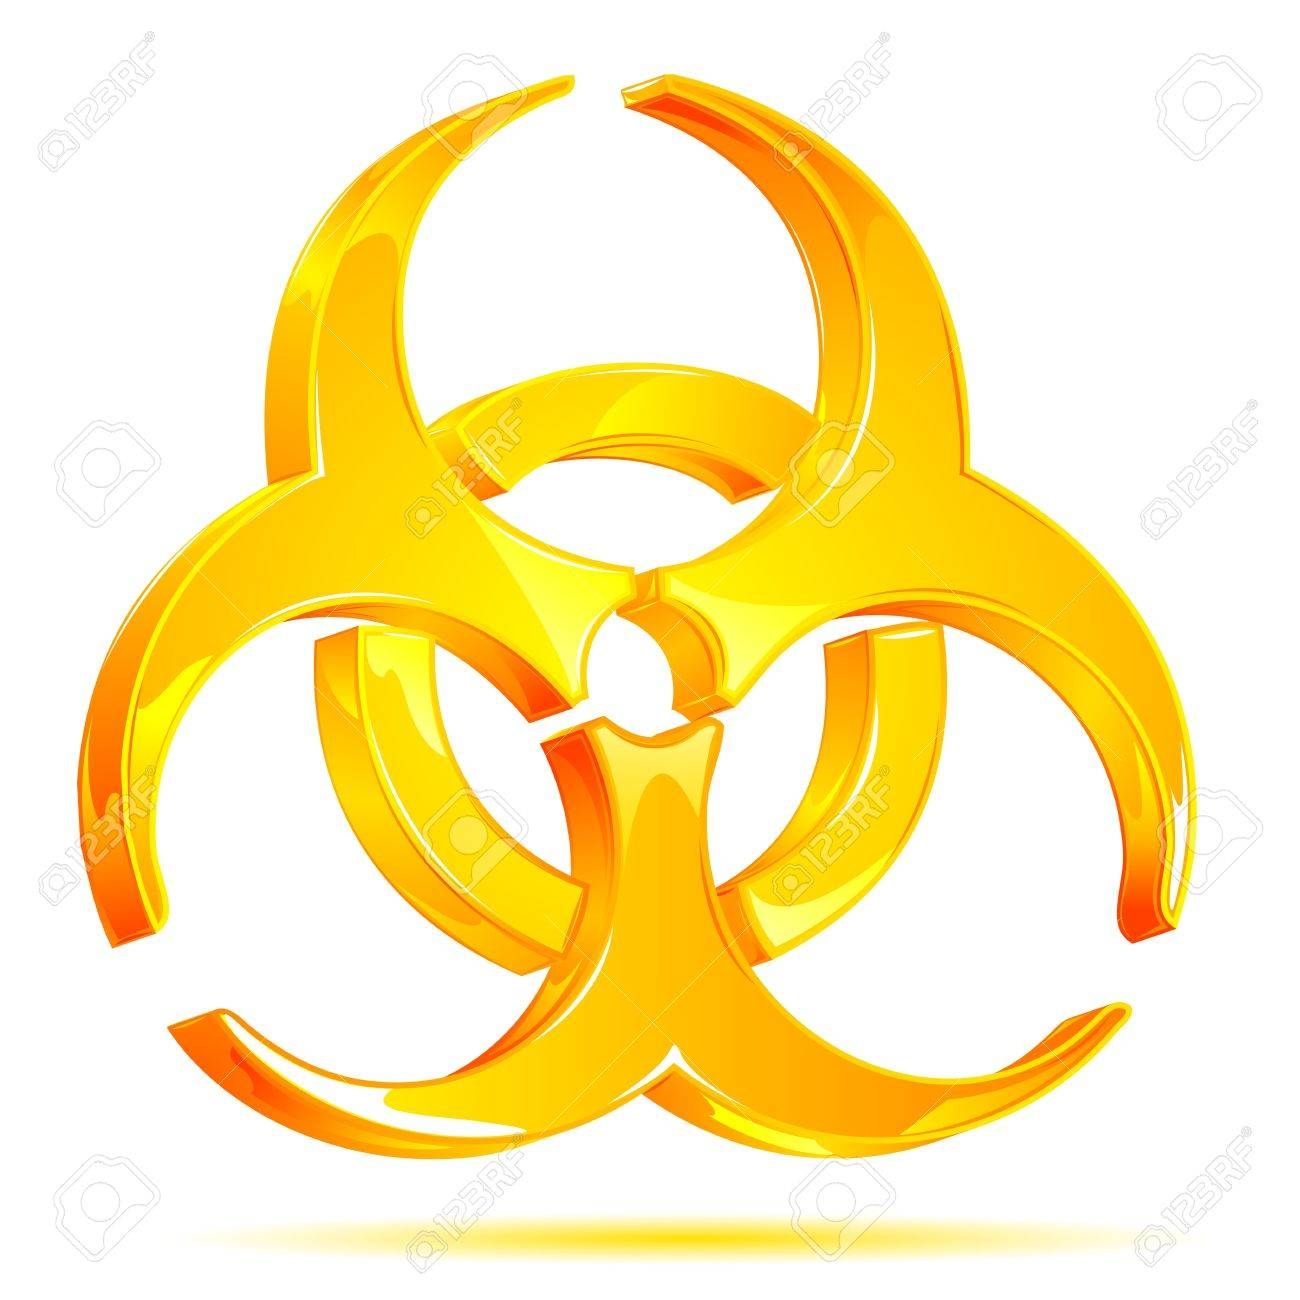 Illustration of glossy biohazard symbol on white background illustration of glossy biohazard symbol on white background stock vector 9167315 biocorpaavc Image collections